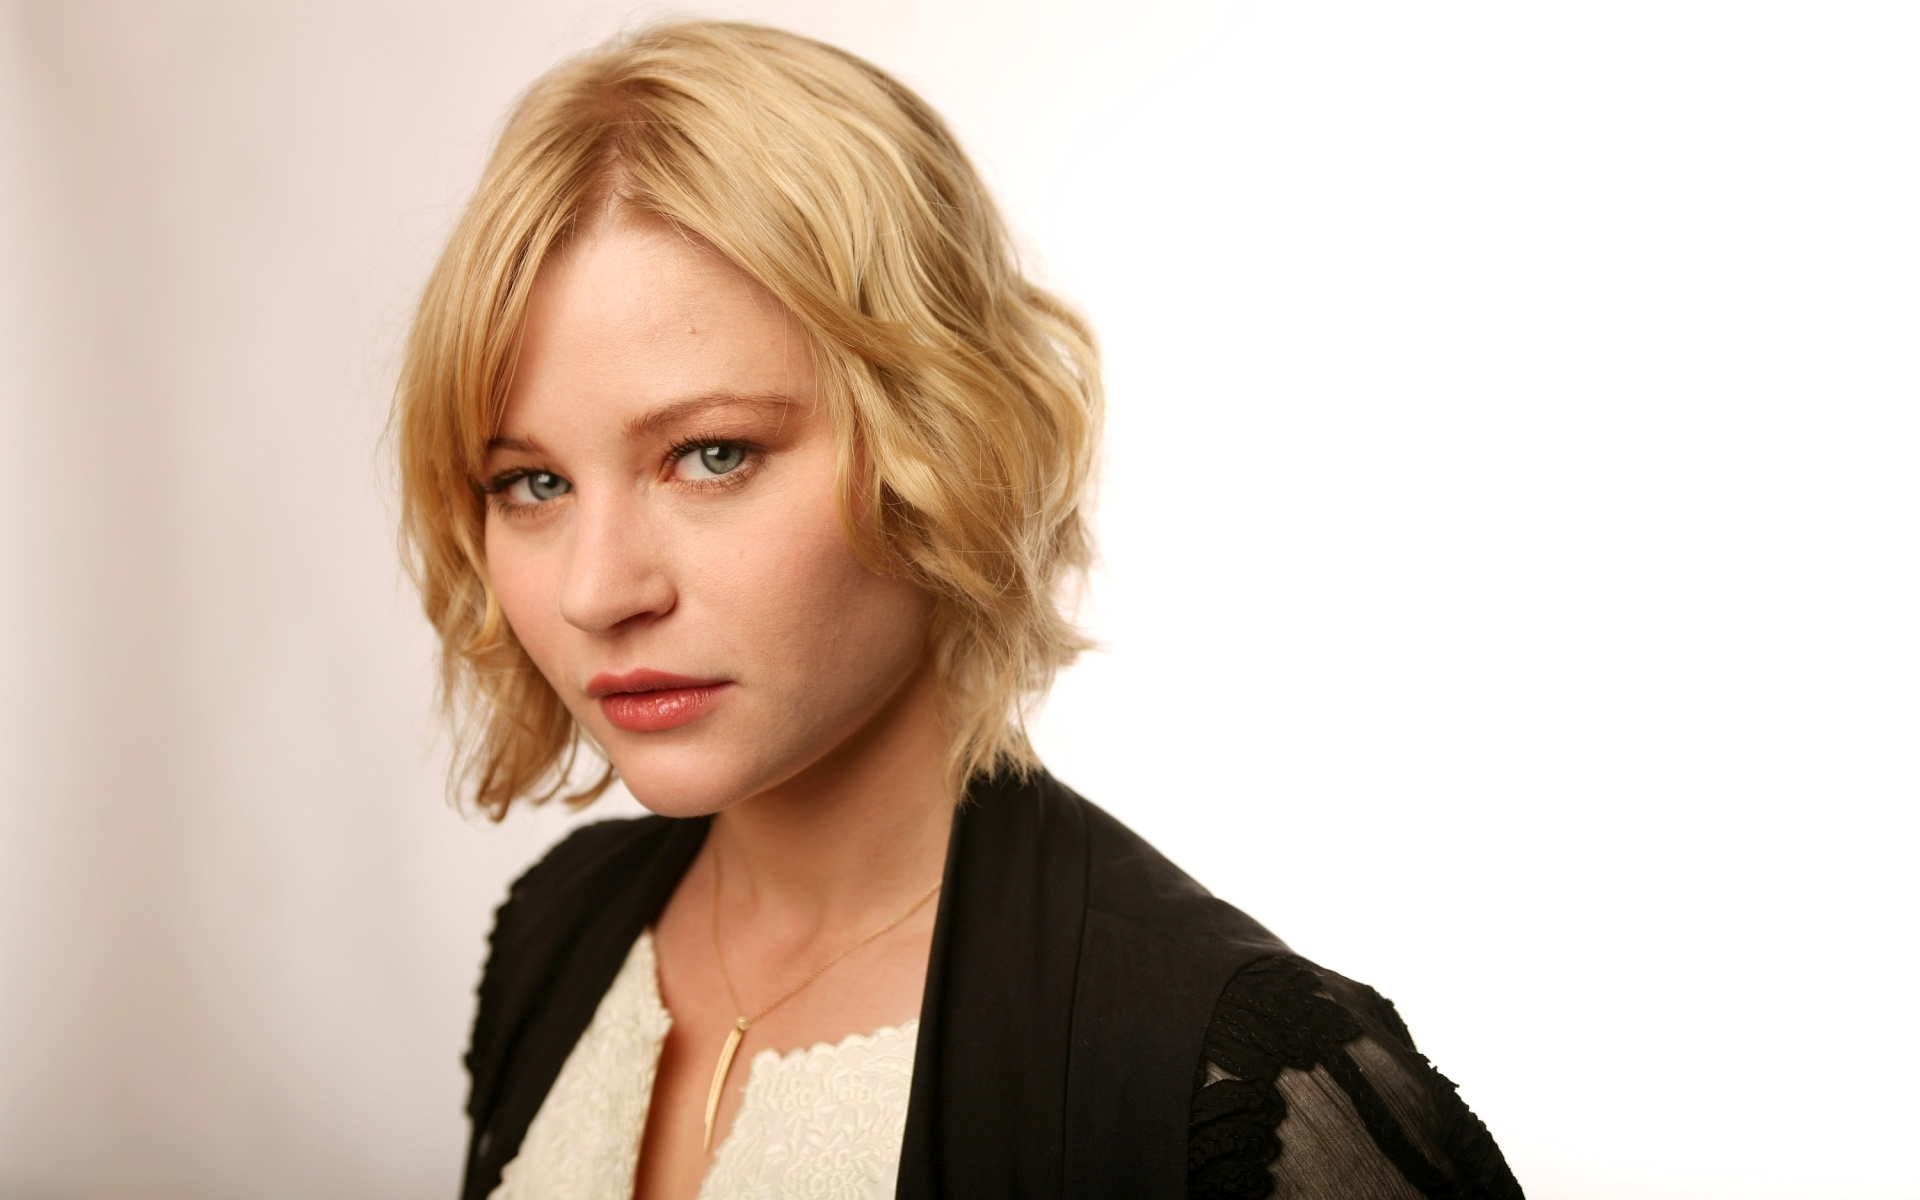 Cute Alien Computer Wallpapers 11 Hd Emilie De Ravin Wallpapers